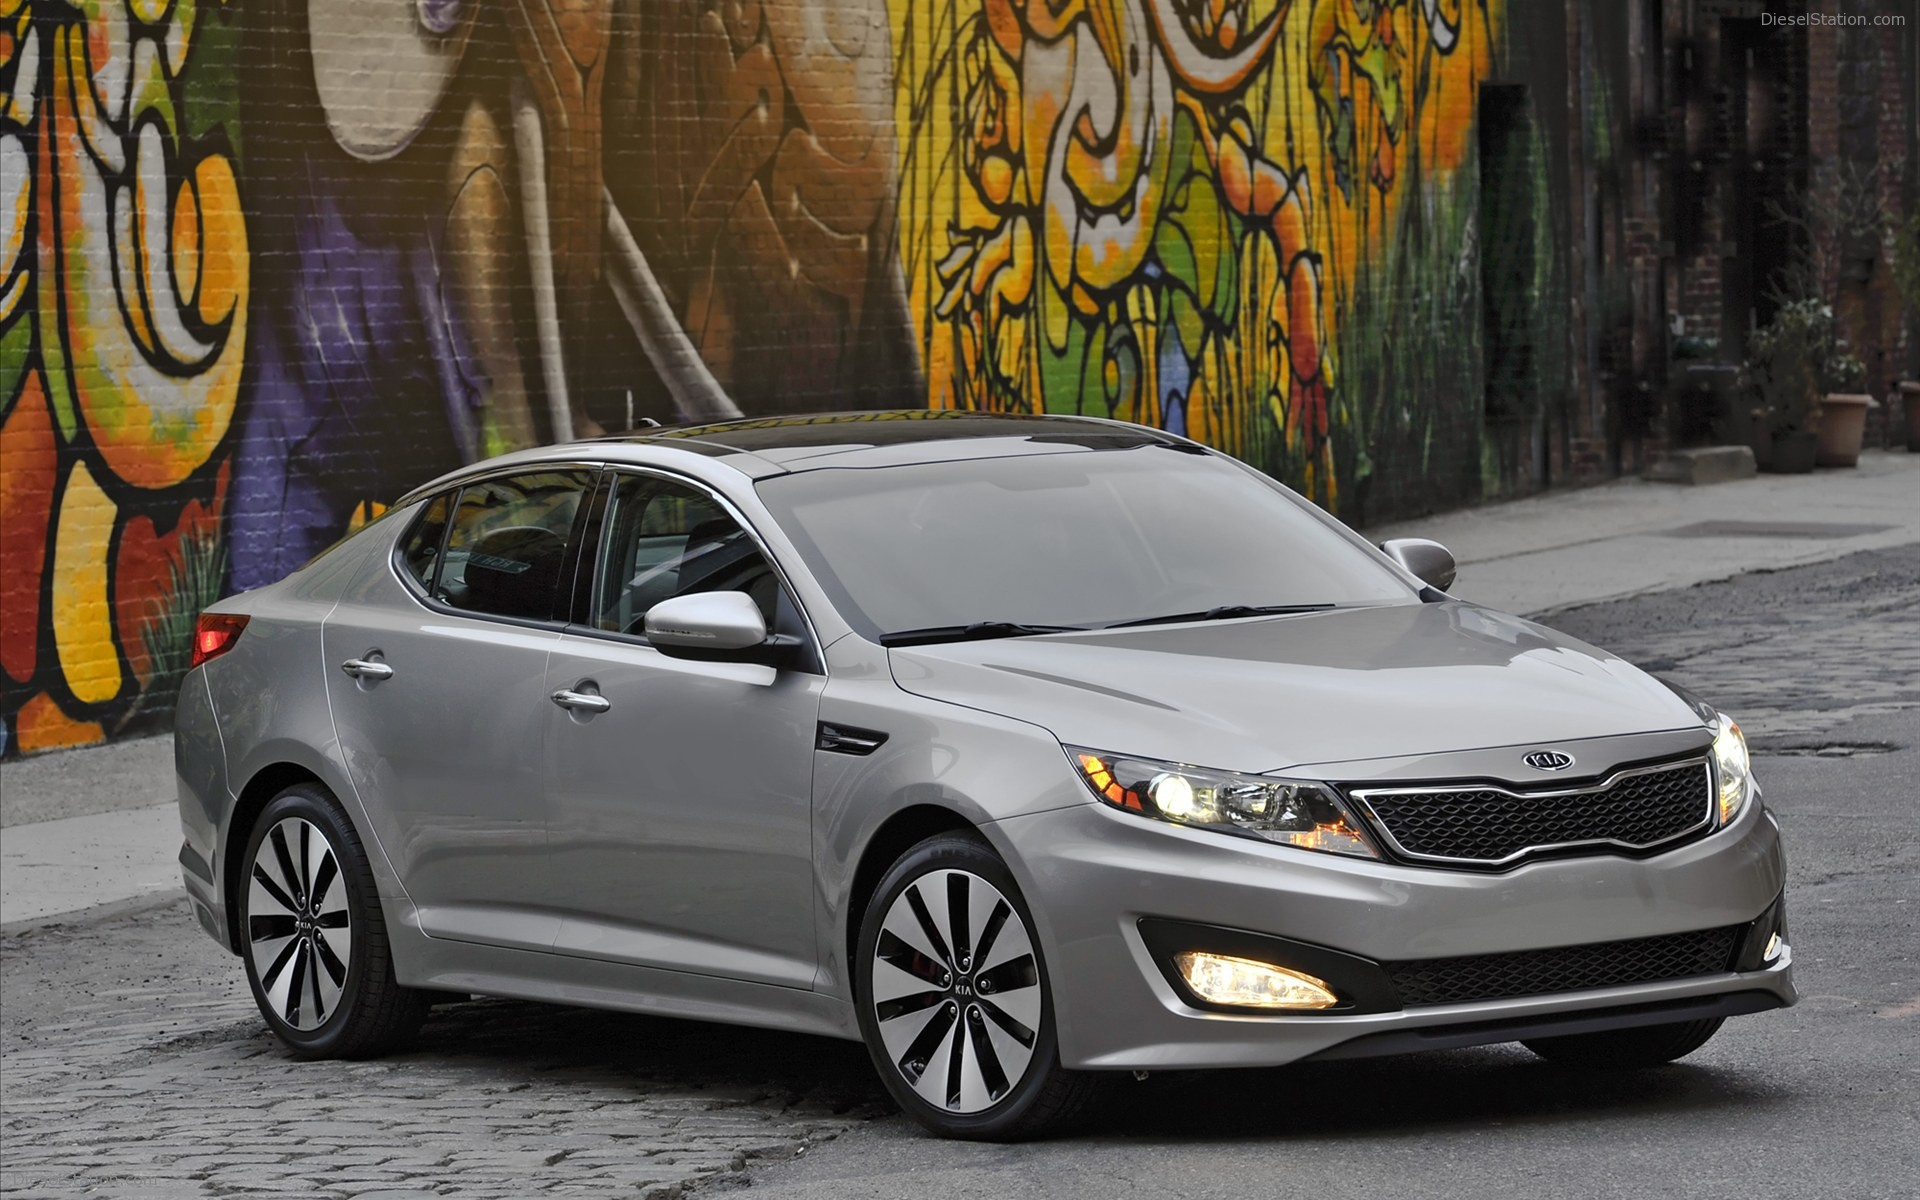 optima cargurus worthy view quarter hybrid kia exterior gallery manufacturer front overview cars pic